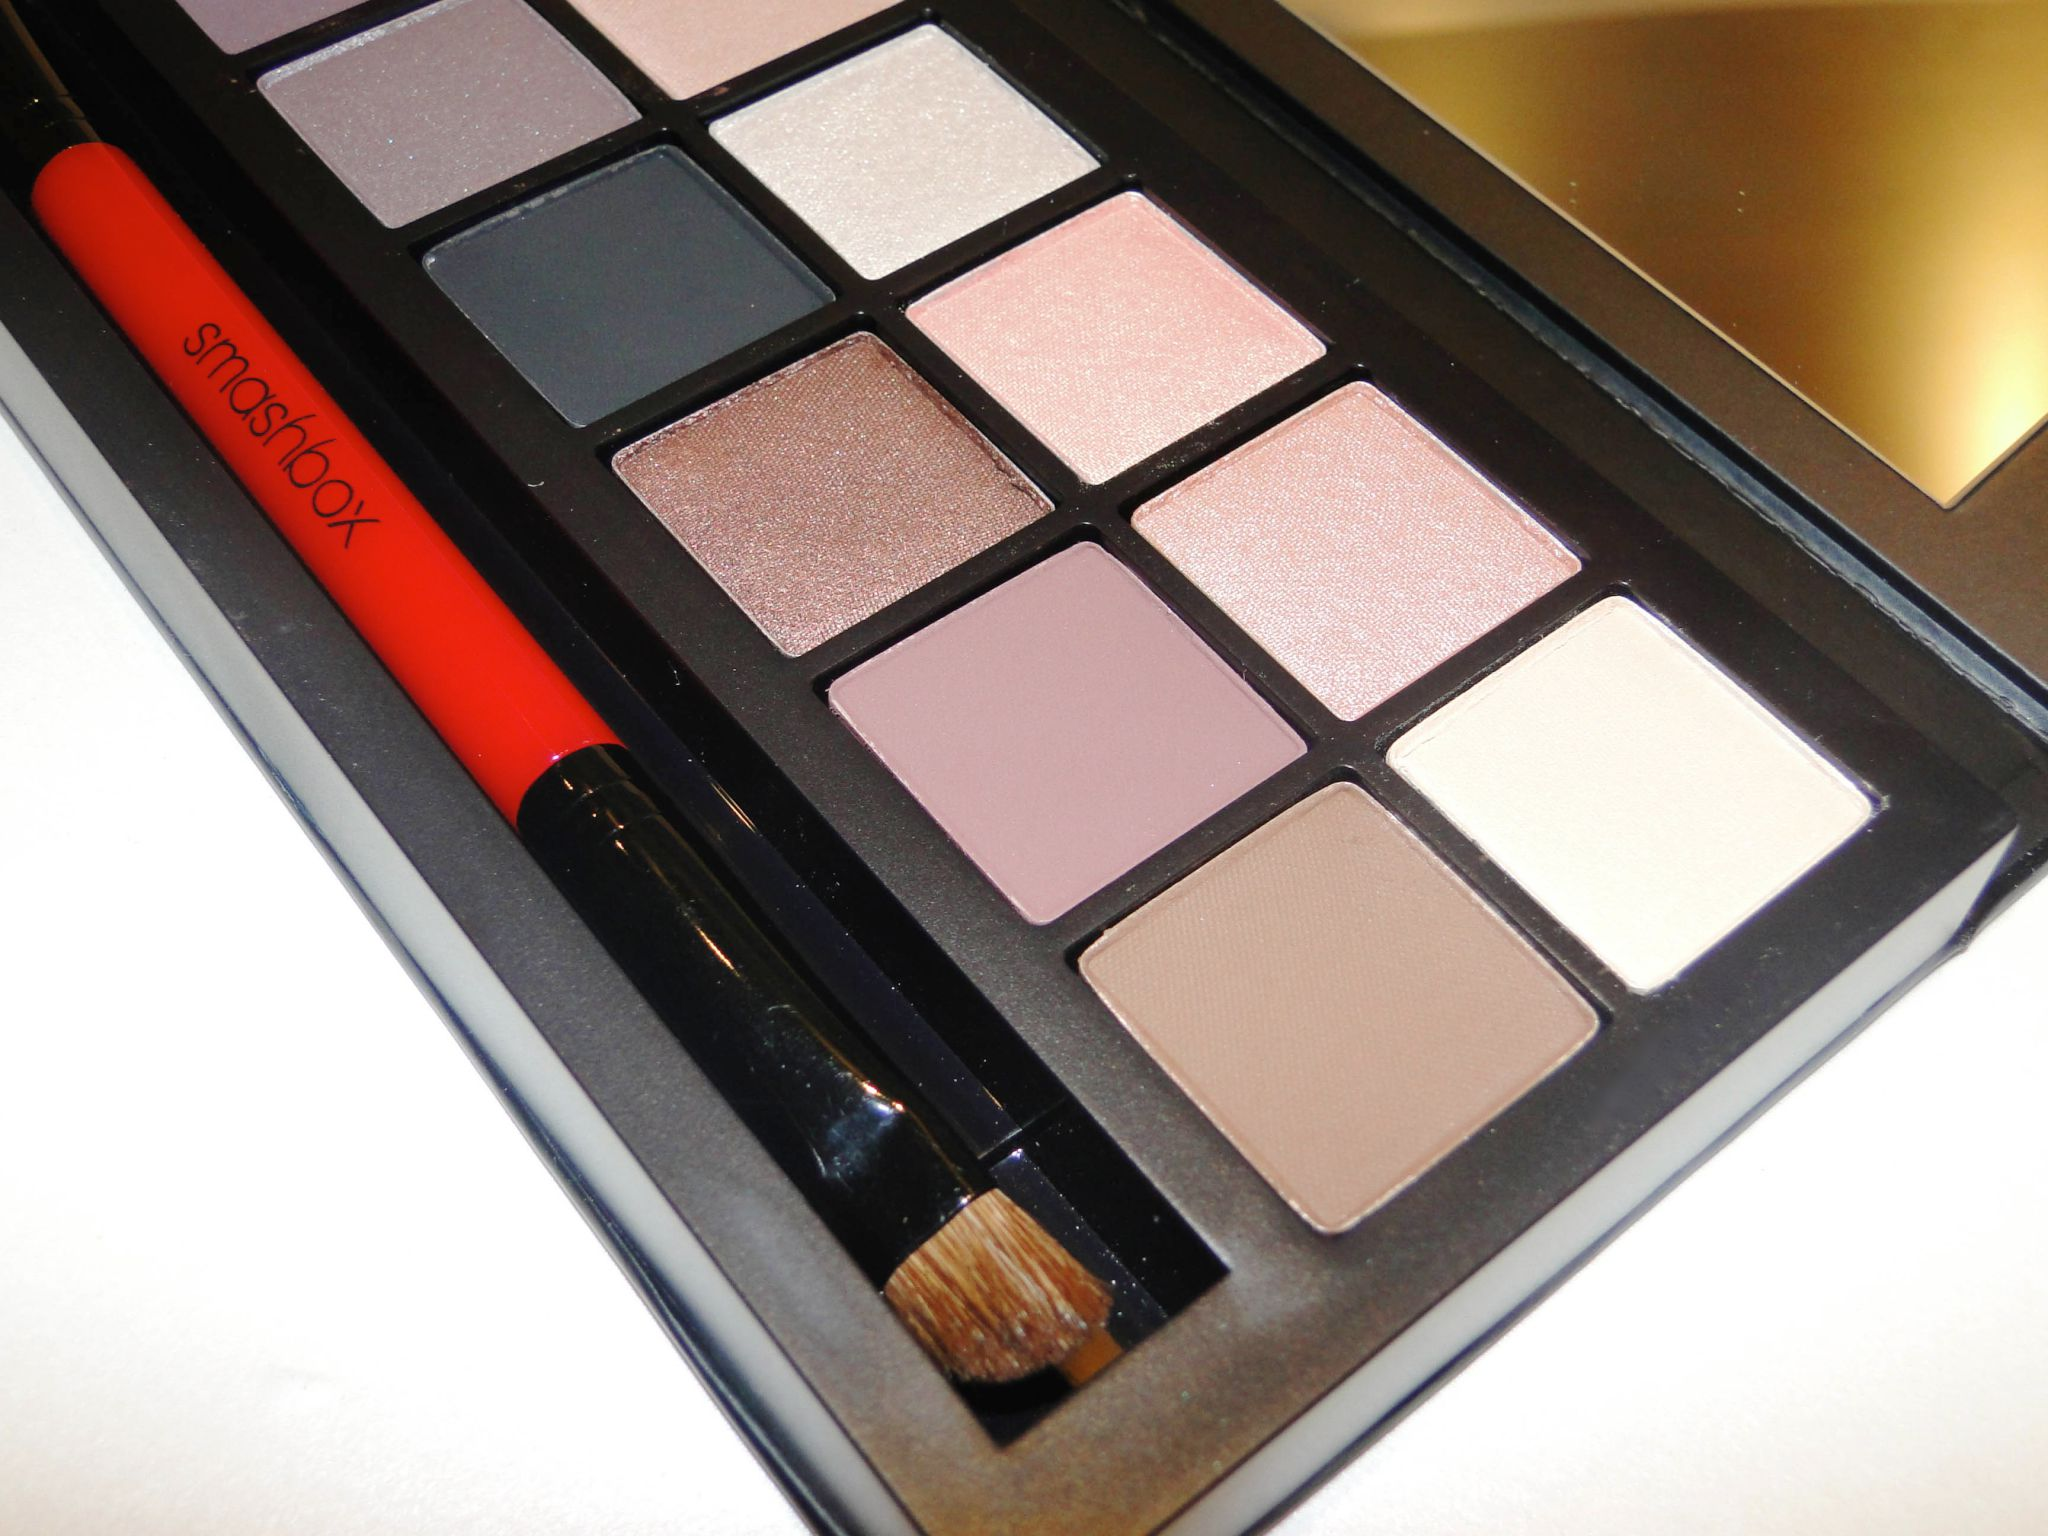 Smashbox Double Exposure 3